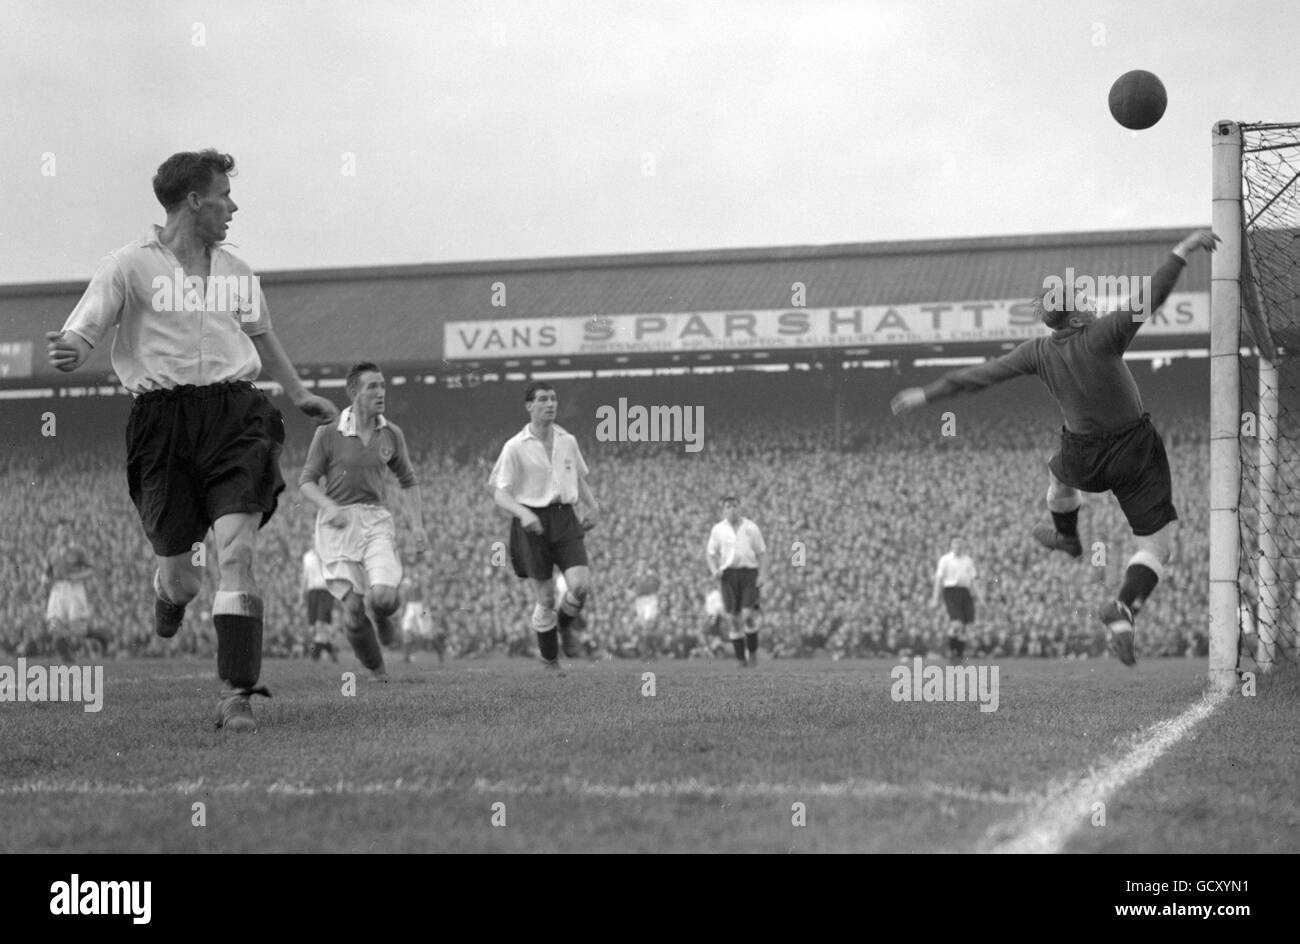 County Goal Black And White Stock Photos & Images